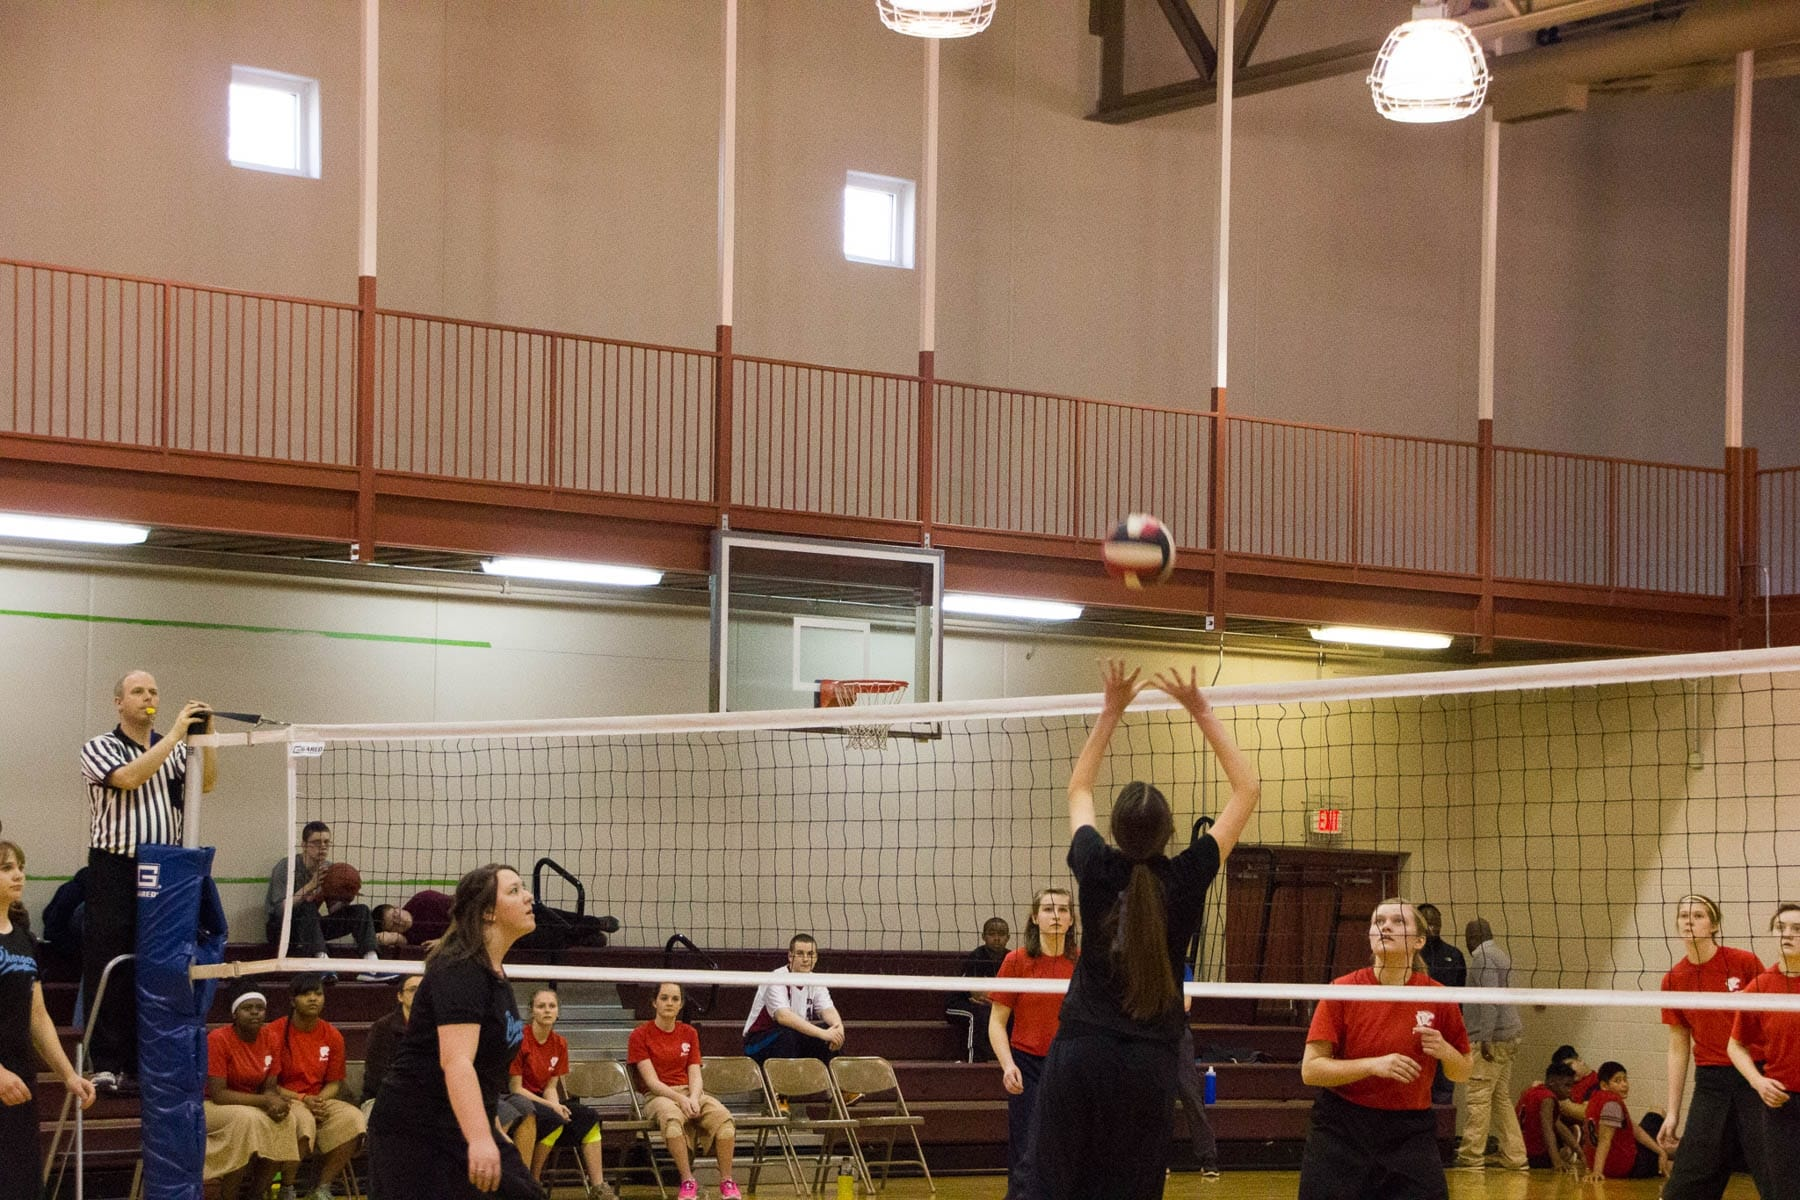 Fairhaven Baptist Academy Volleyball Basketball Tournament 2016 (16 of 40)